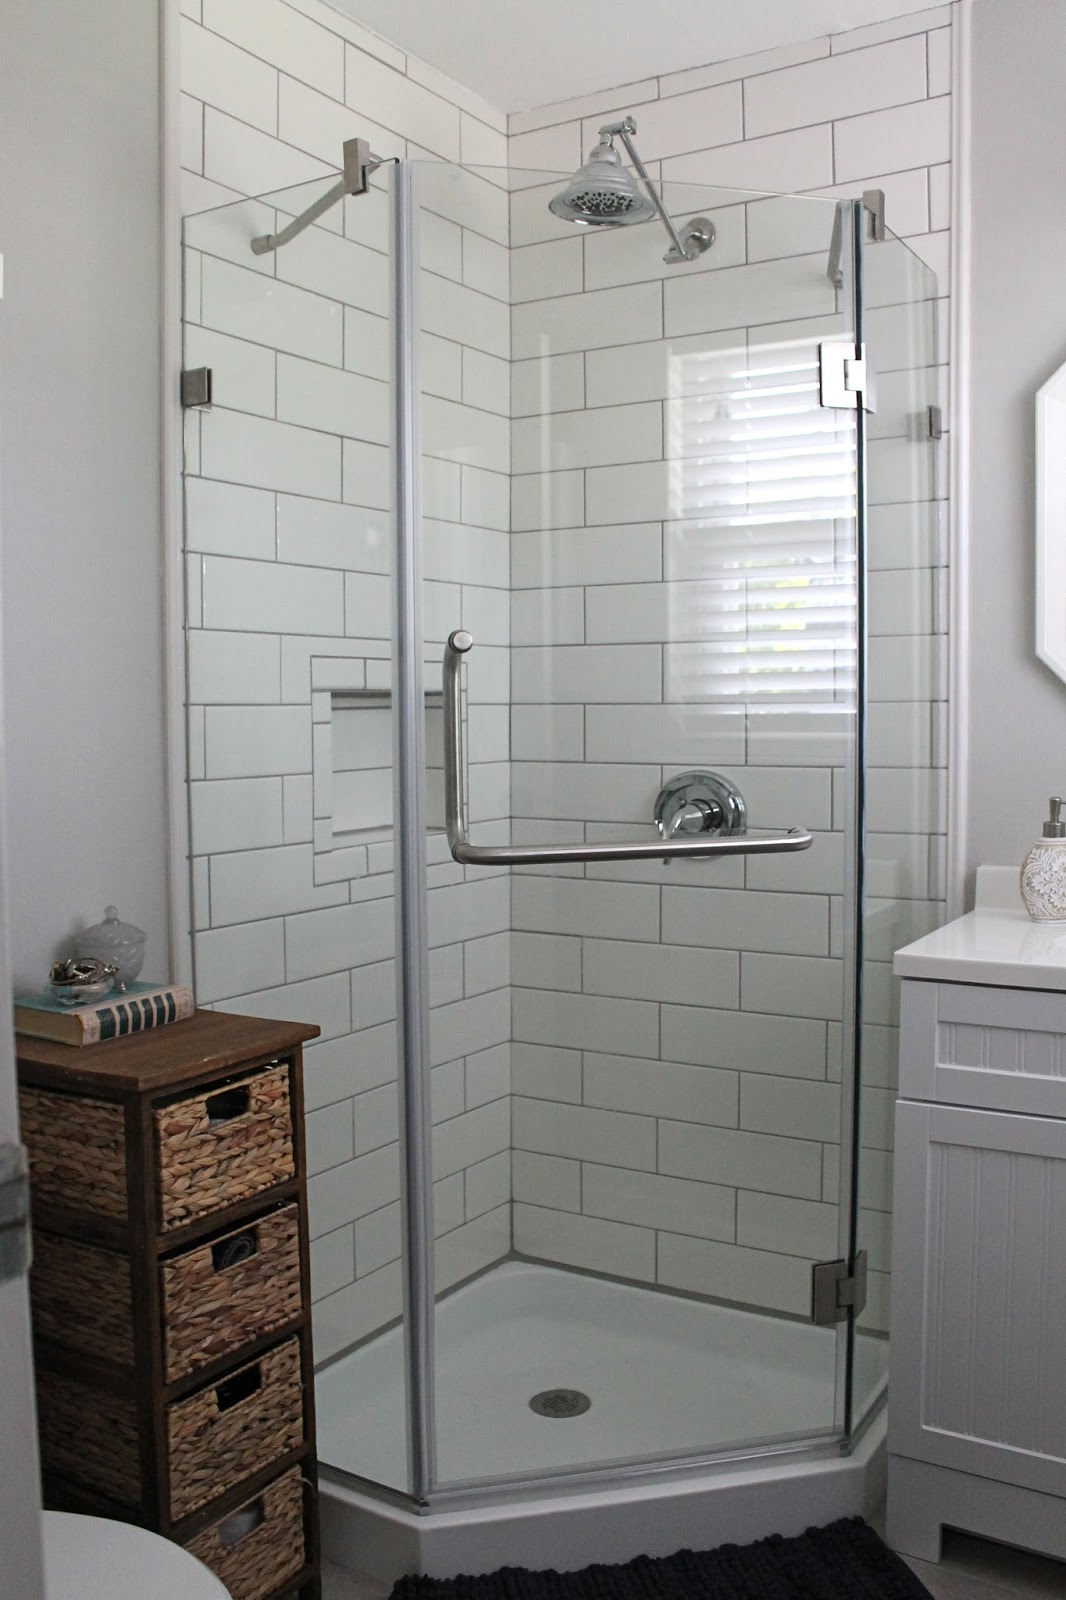 Cute The shower was the most expensive part of the bathroom remodel Most of the other pieces we were able to get on clearance Here is a rough estimate of our